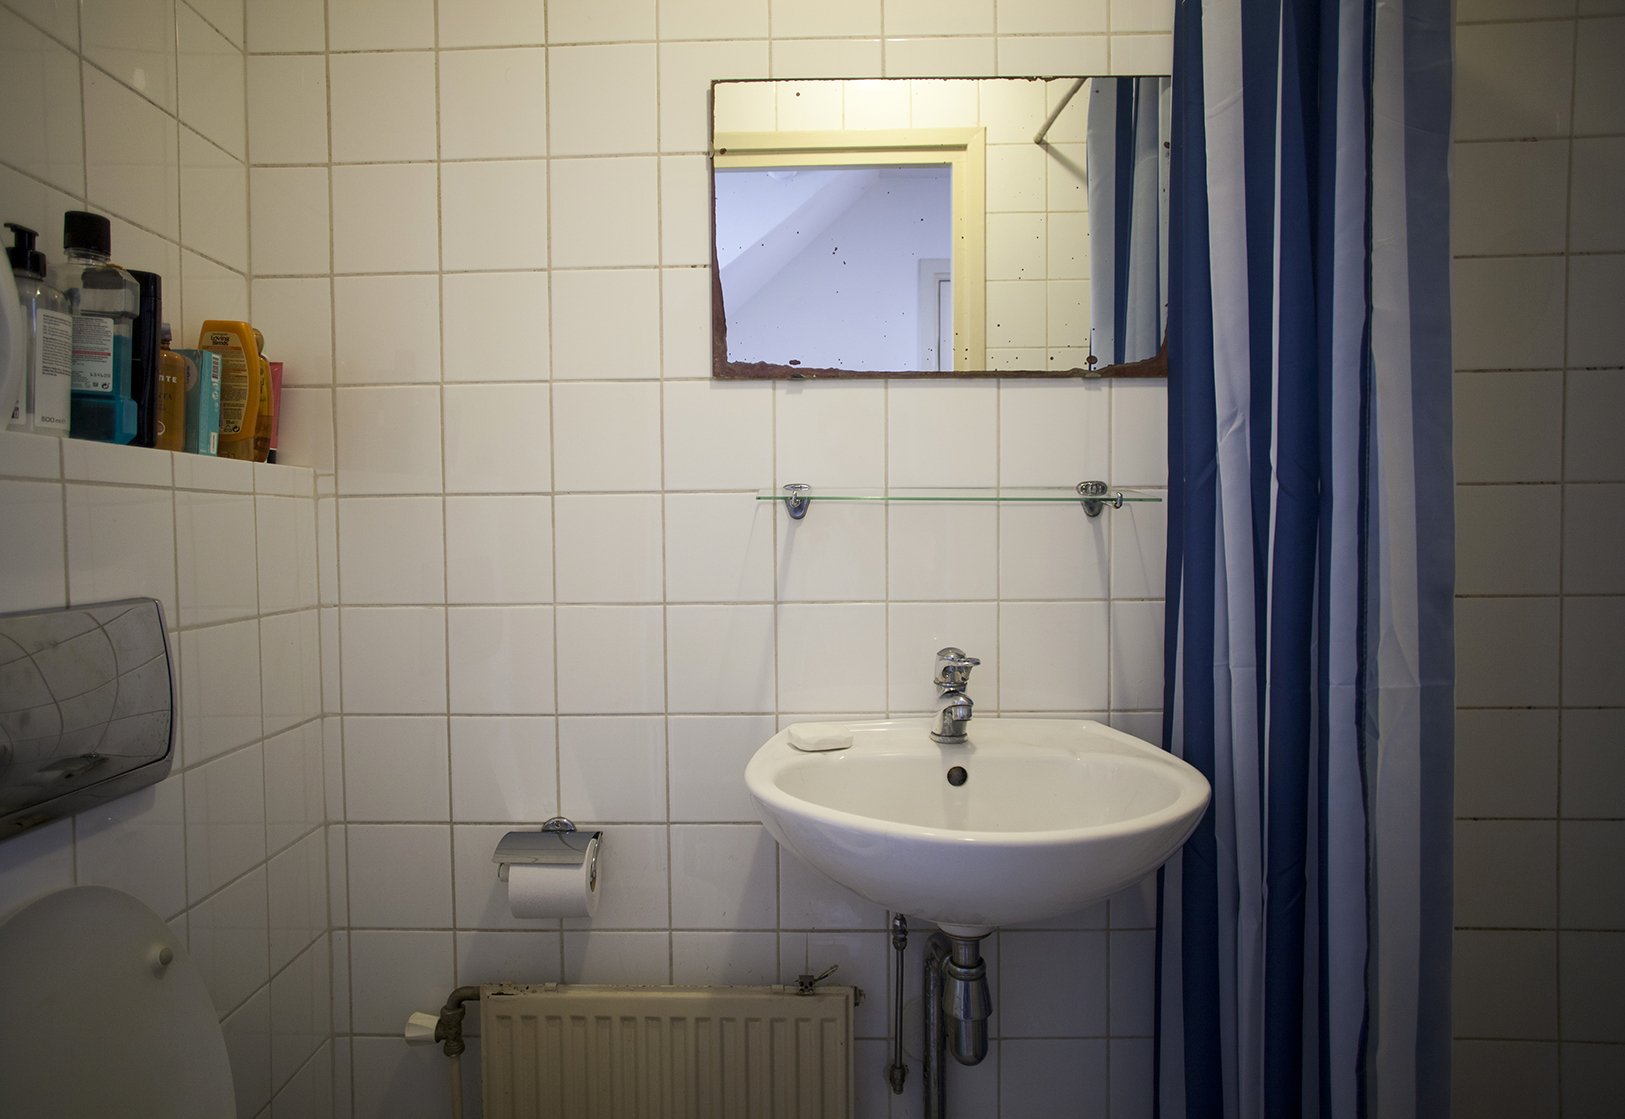 Bathroom, total view. Photo by Giovanni Giaretta.